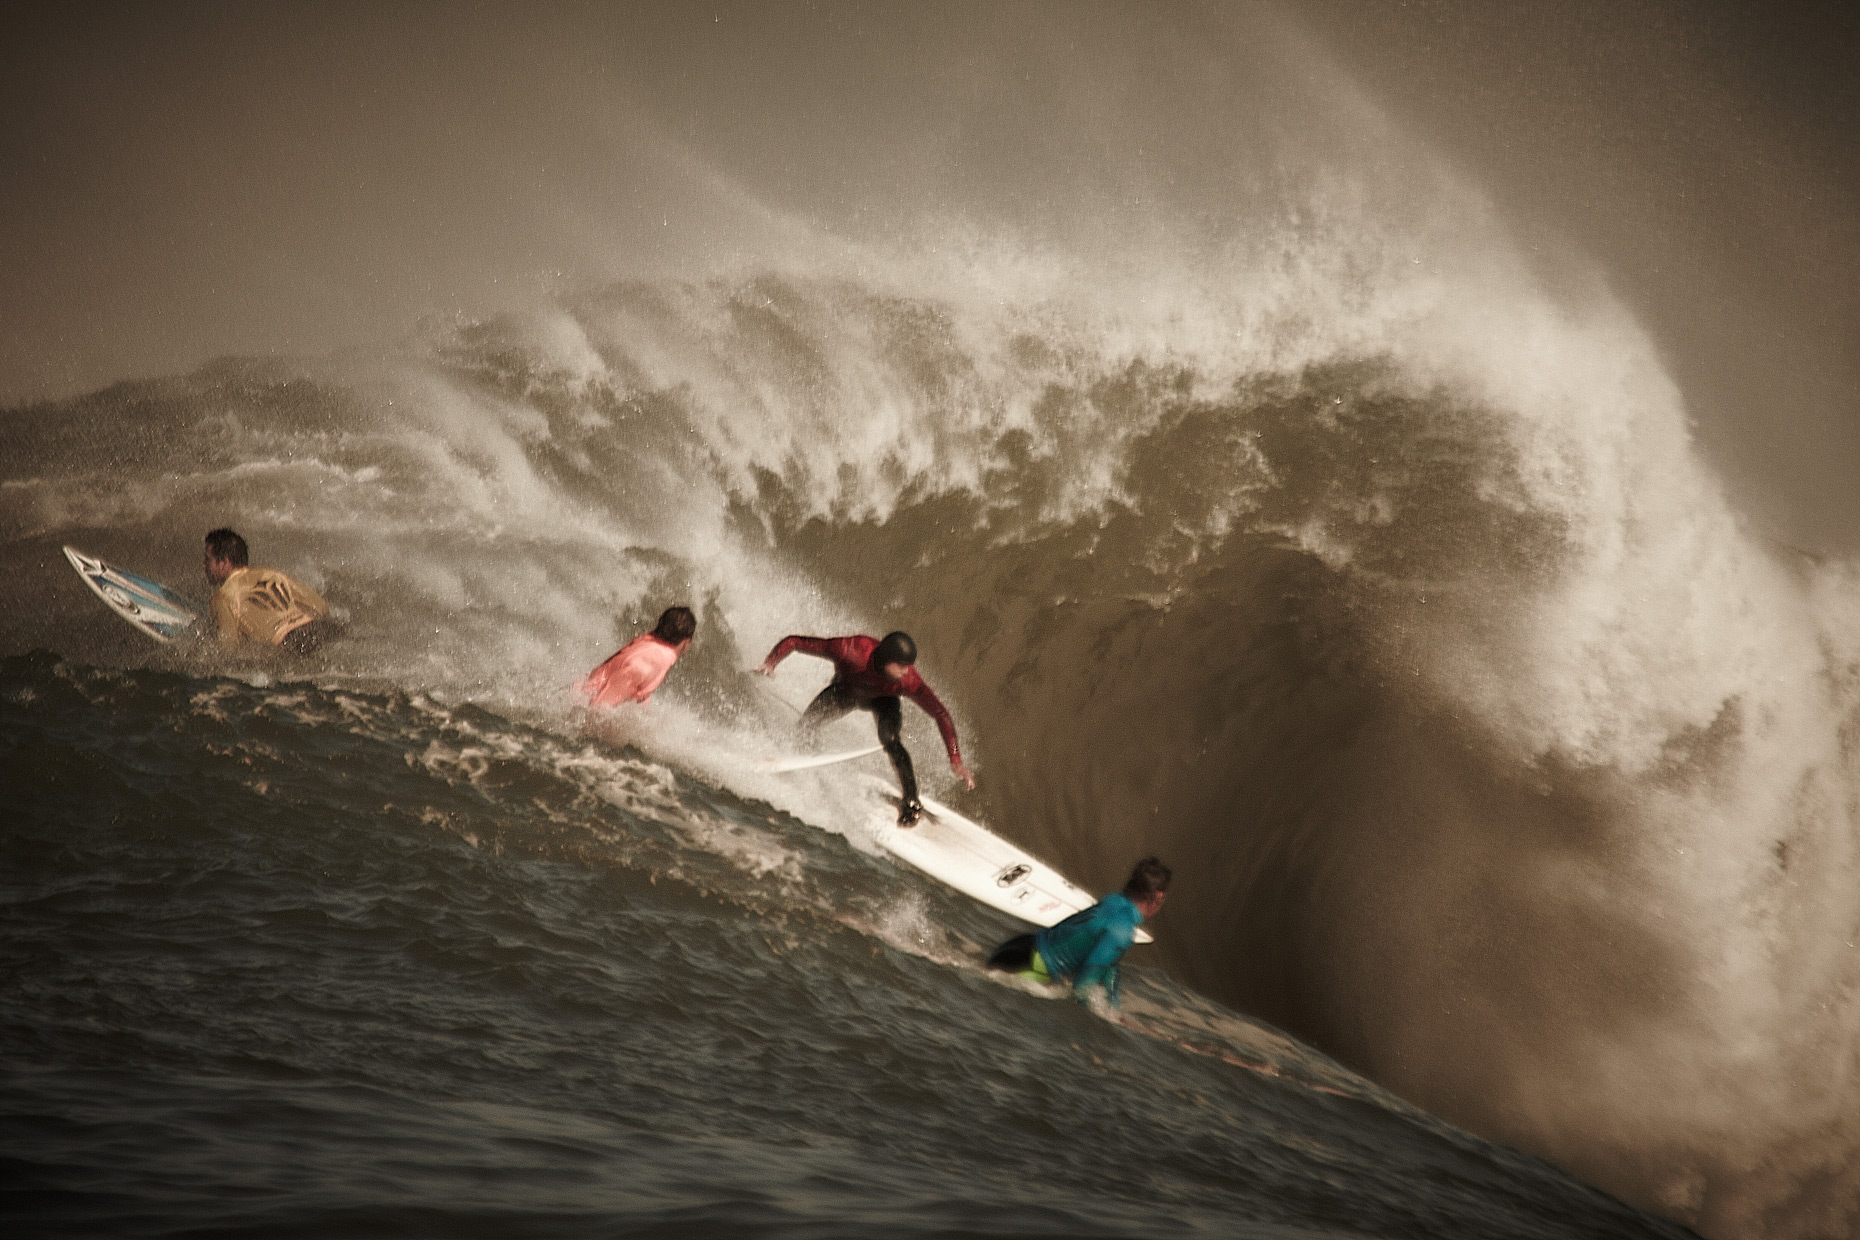 Projects Action Photography Derek Israelsen 010 Surfers Gathering